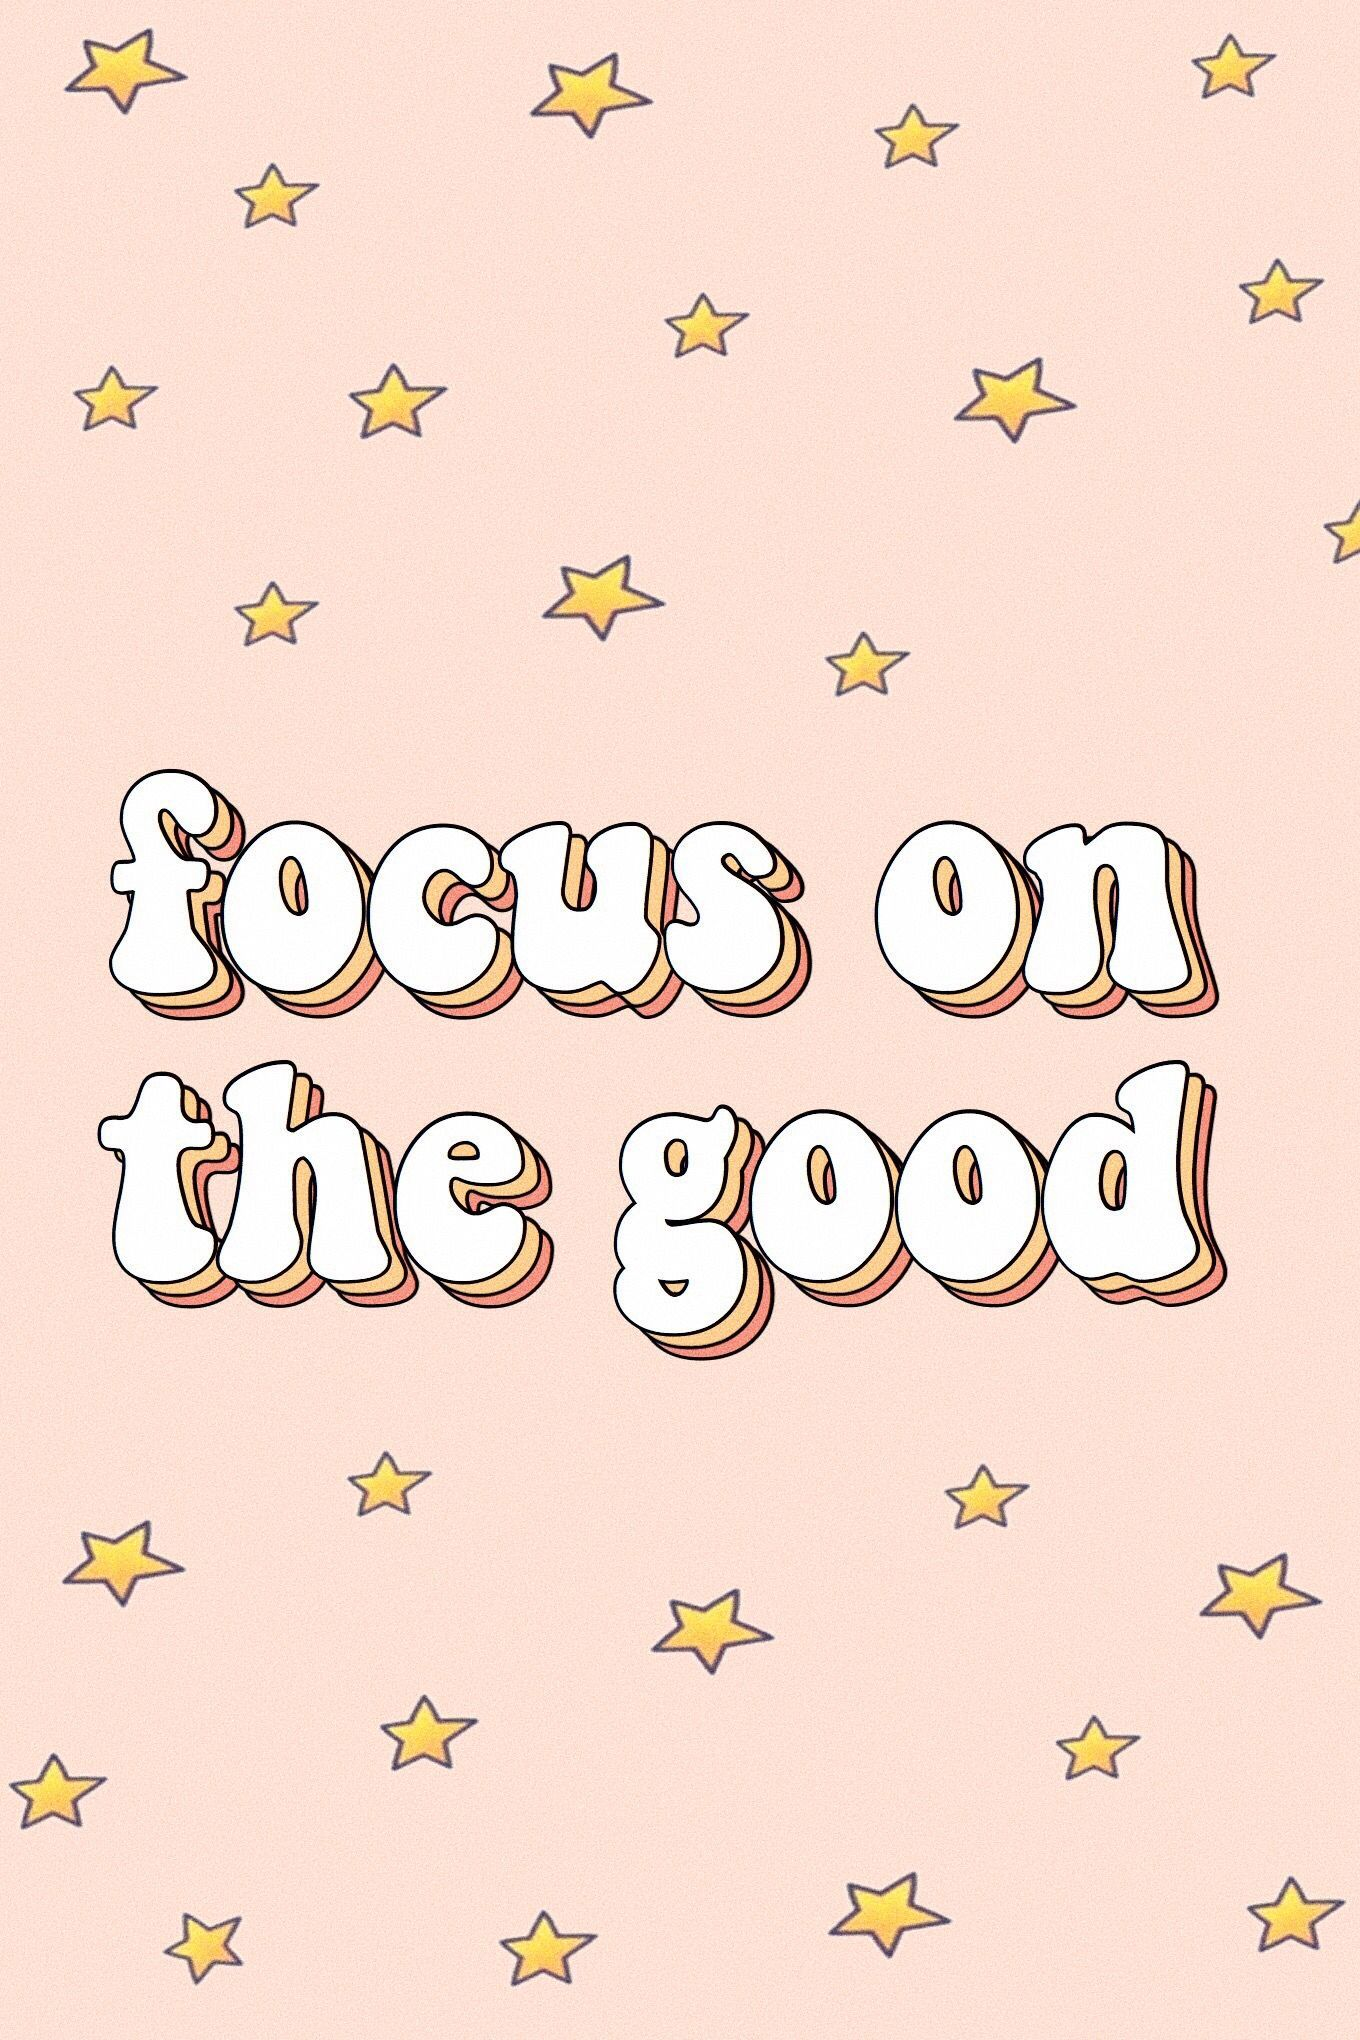 focus on the good words quotes positivity happiness motivate vsco aesthetic tumblr retro stars pink #wallcollage